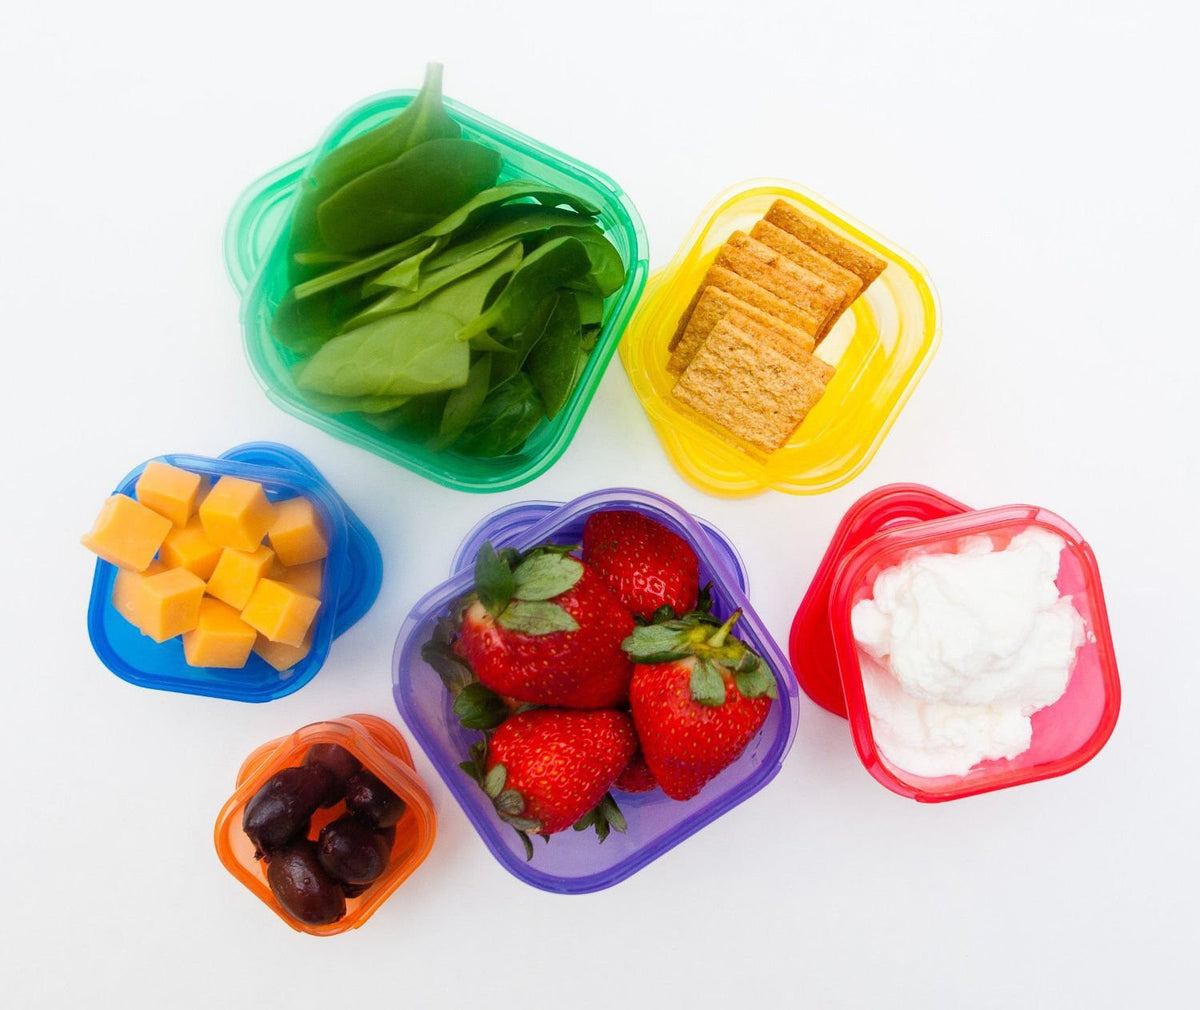 21 Day Portion Control Containers Kit - 7 PC Labeled